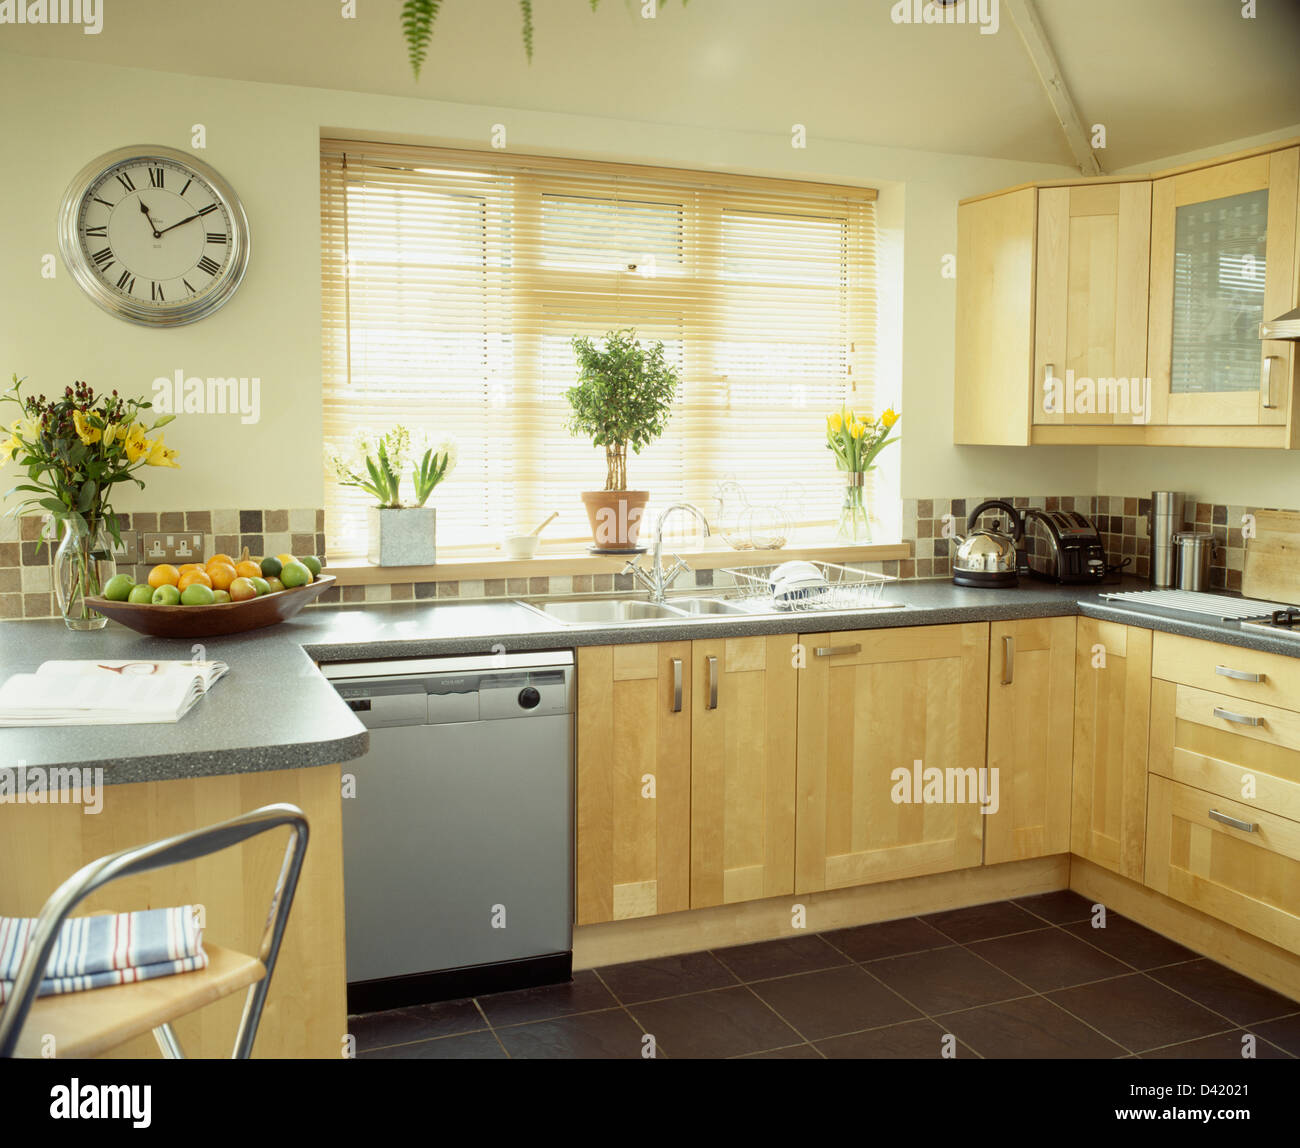 Granite Kitchen Worktops Images: Circular Wall Clock In Modern Pale Wood Kitchen With